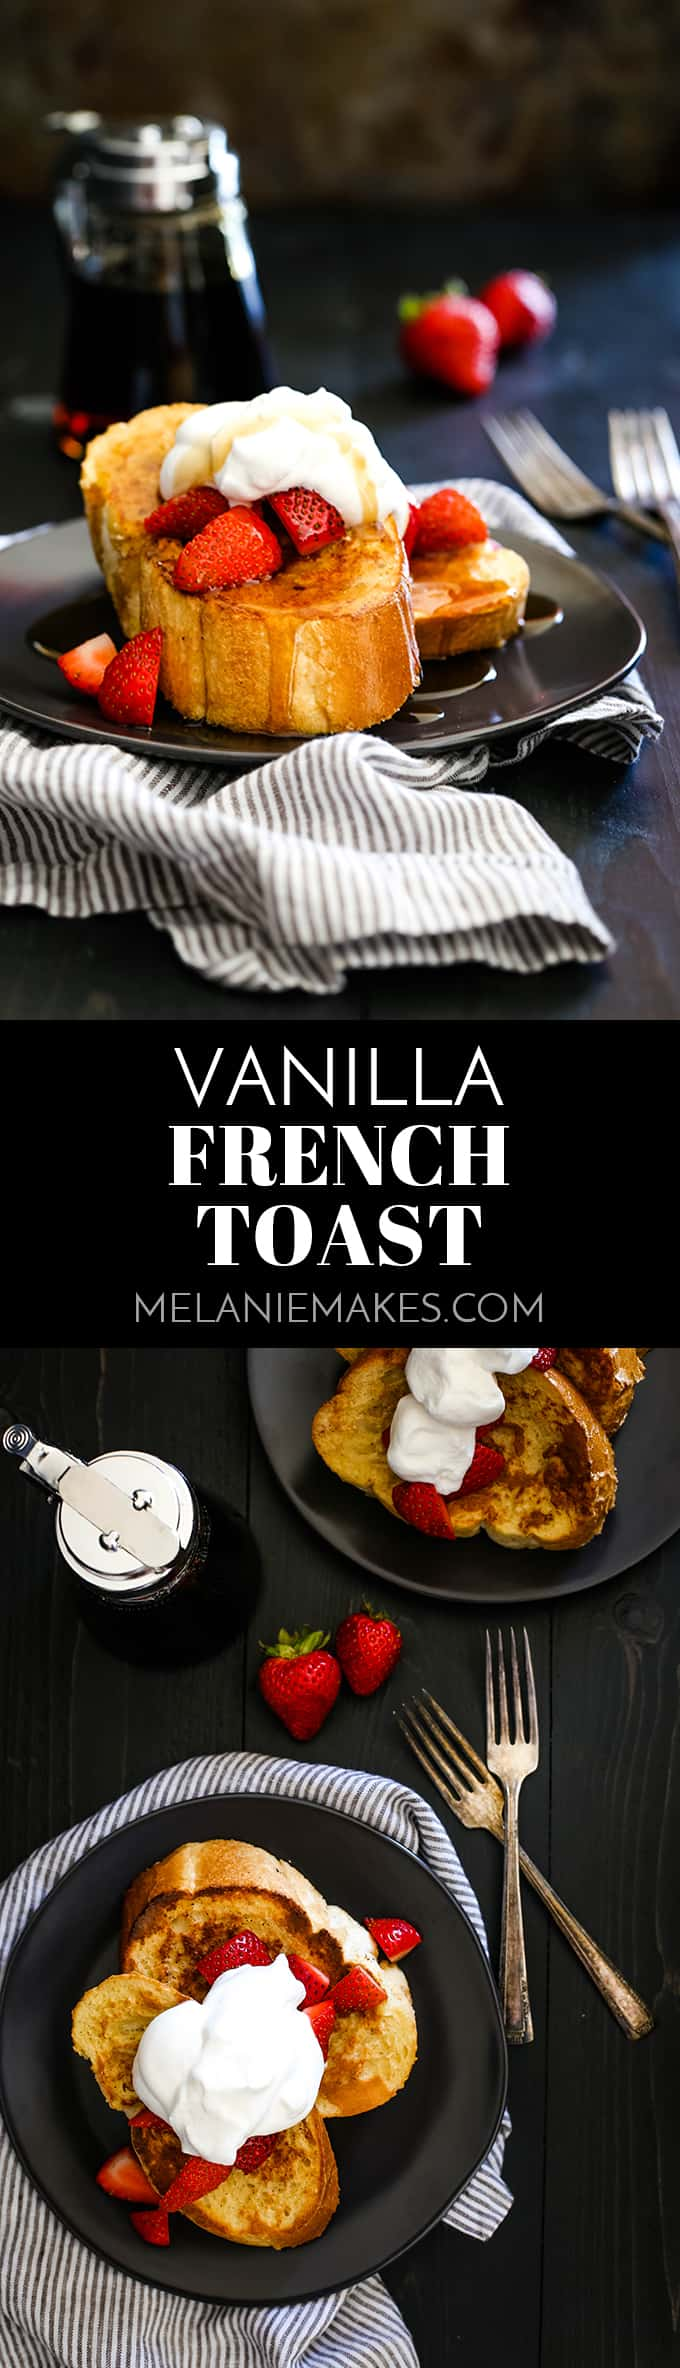 This Vanilla French Toast is guaranteed to become your new favorite as each slice is spiked with both vanilla extract and vanilla paste. So delicious! #frenchtoast #breakfast #breakfastrecipes #vanilla #brunch #bread